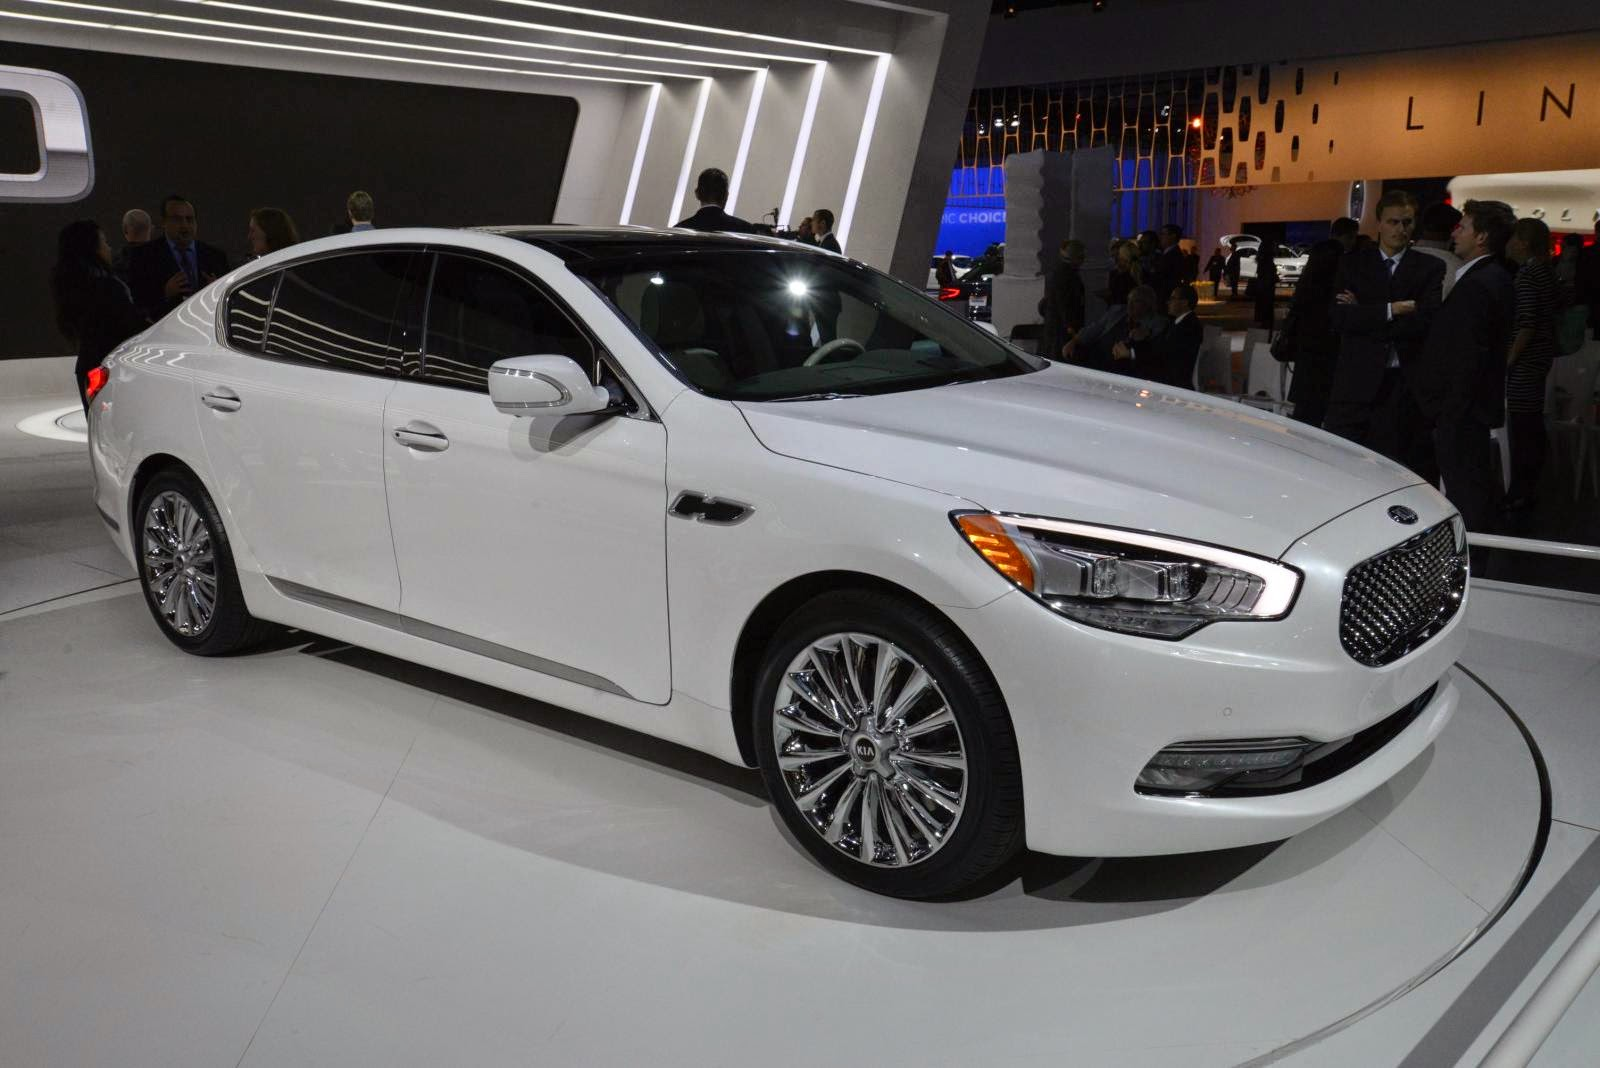 2015 kia cadenza review and price. Black Bedroom Furniture Sets. Home Design Ideas